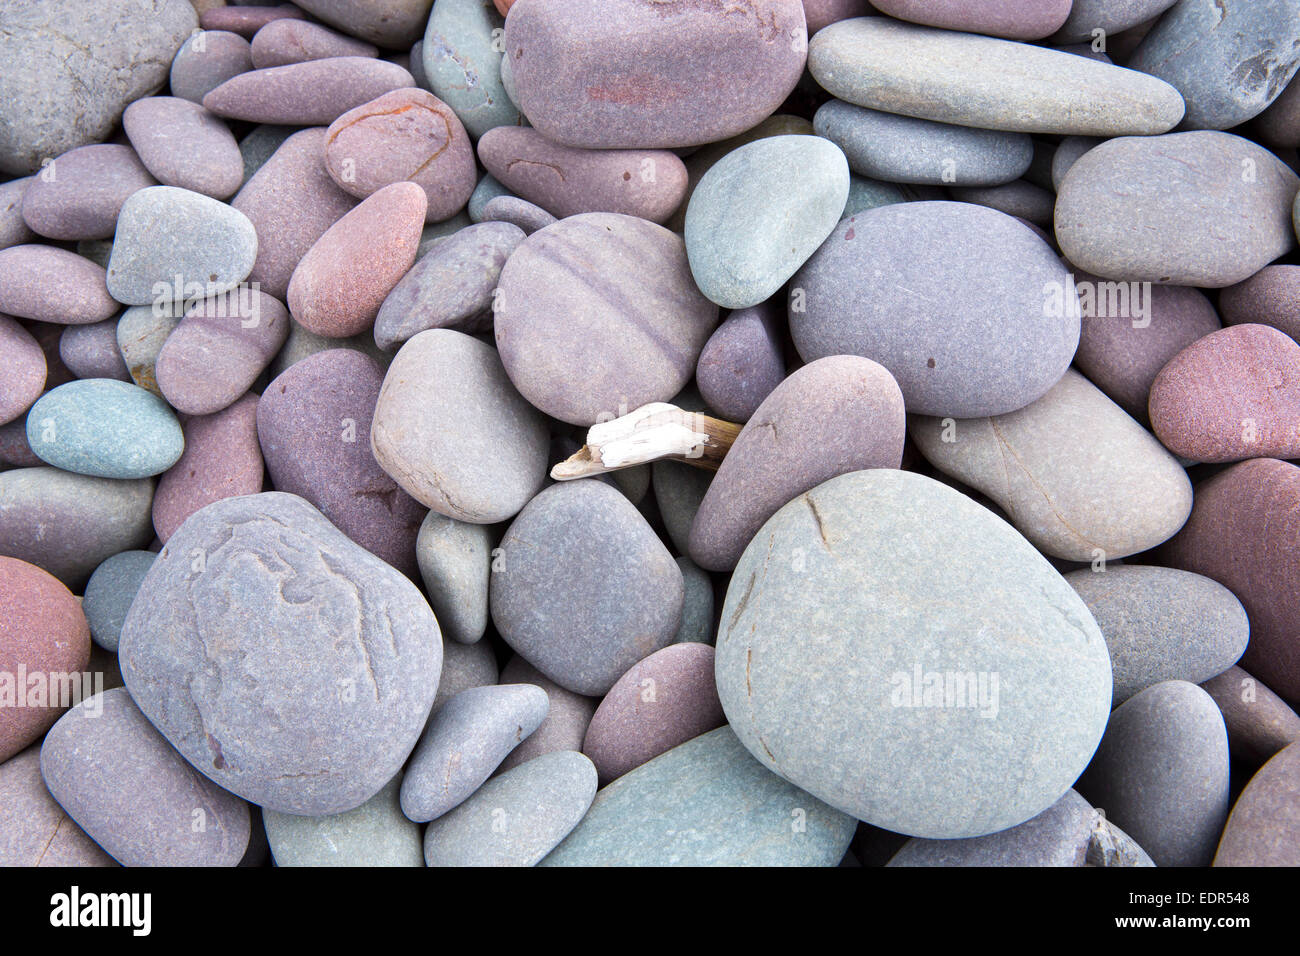 Pastel Shades pebbles in pastel shades of pink, purple, grey and blue, on a